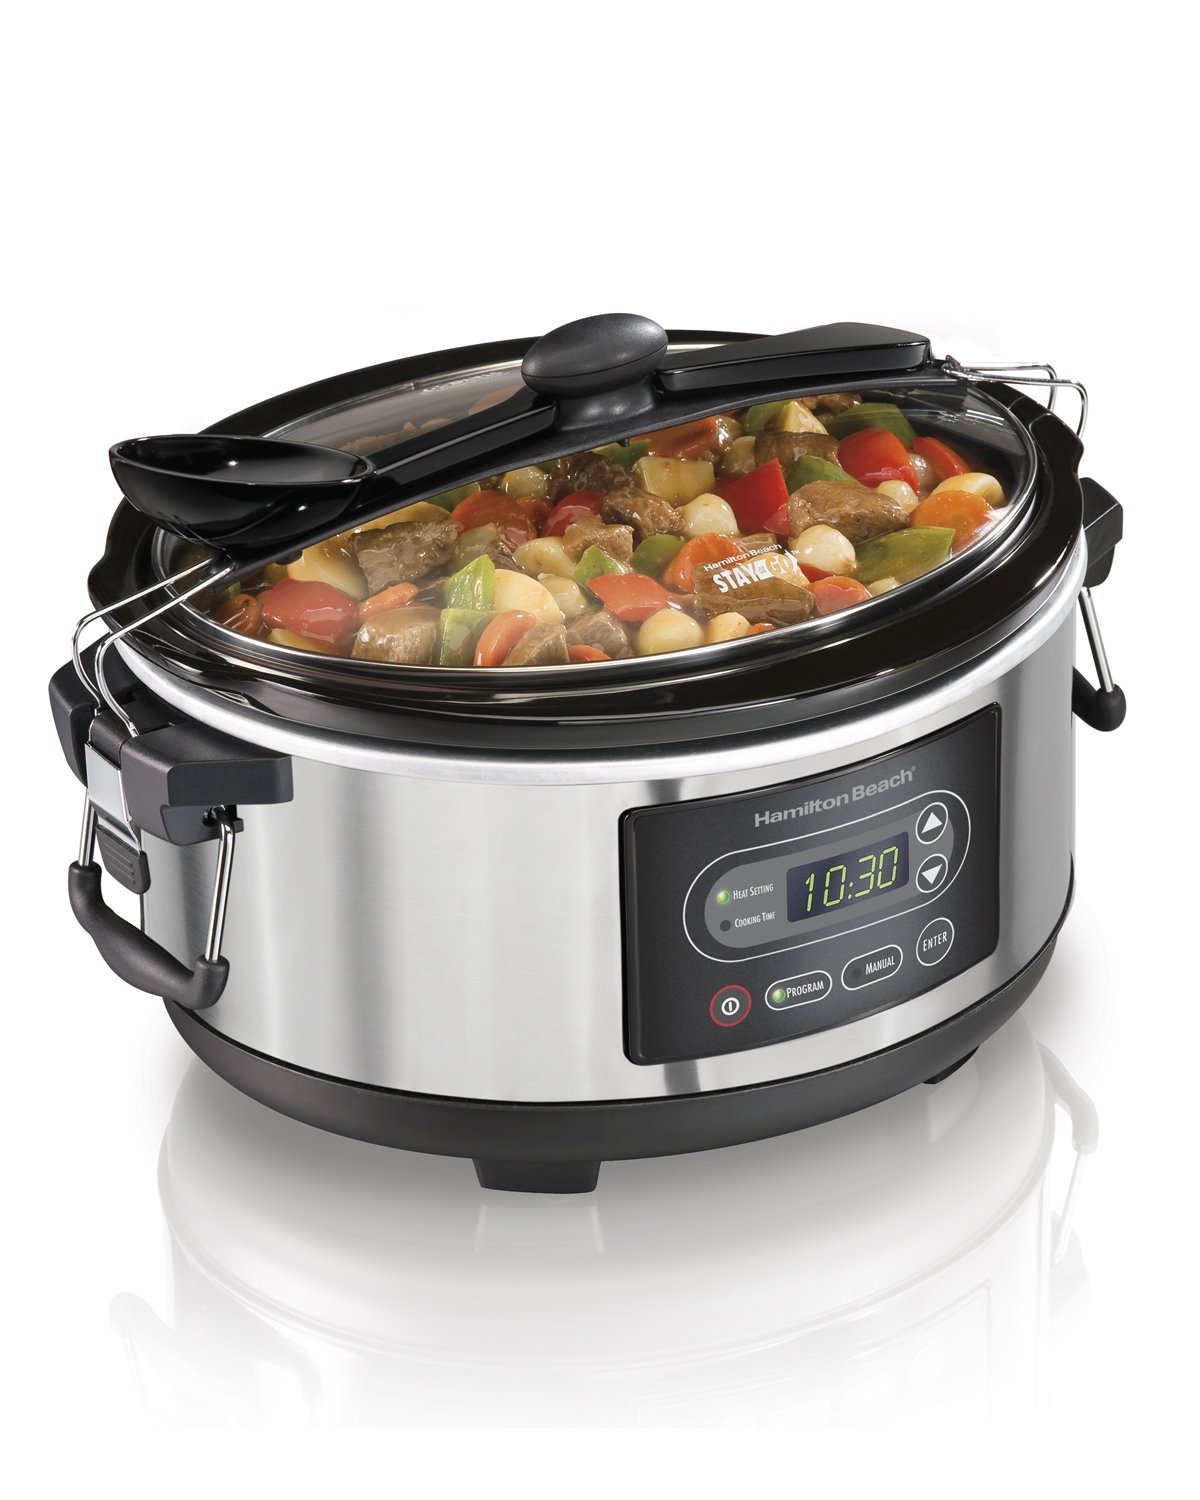 Hamilton Beach 33957 Programmable Stay or Go Slow Cooker, 5-Quart, Silver